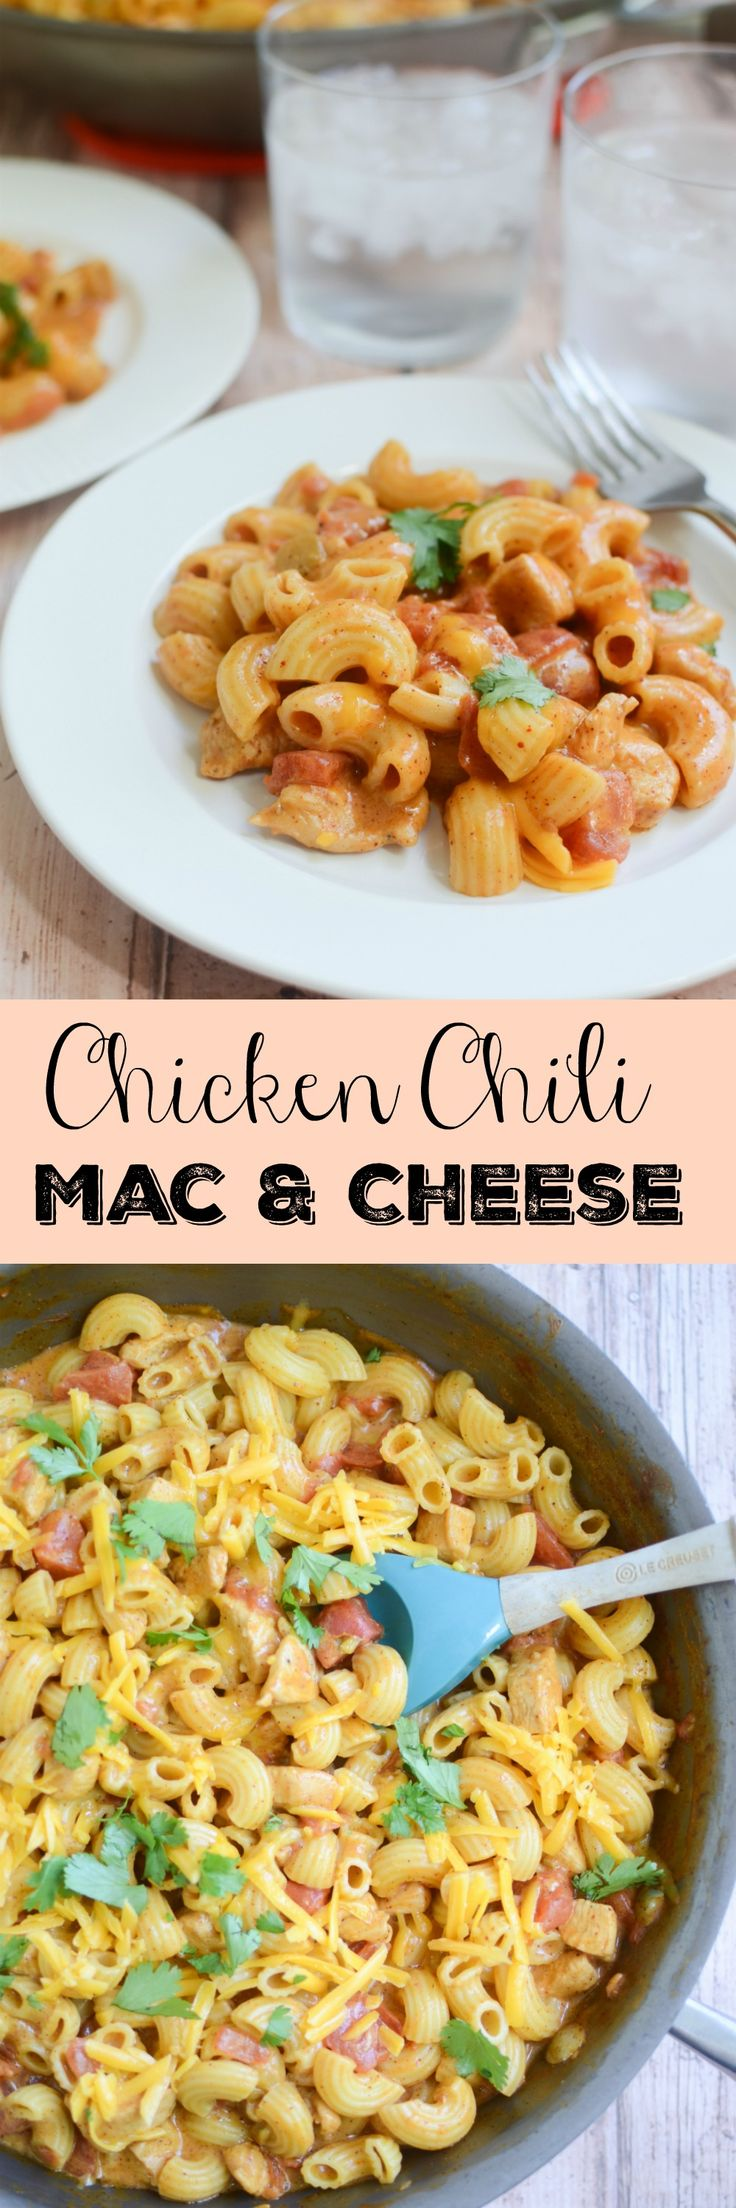 Chicken Chili Mac and Cheese - the whole family will love this macaroni and cheese recipe with just a the right amount of spice!